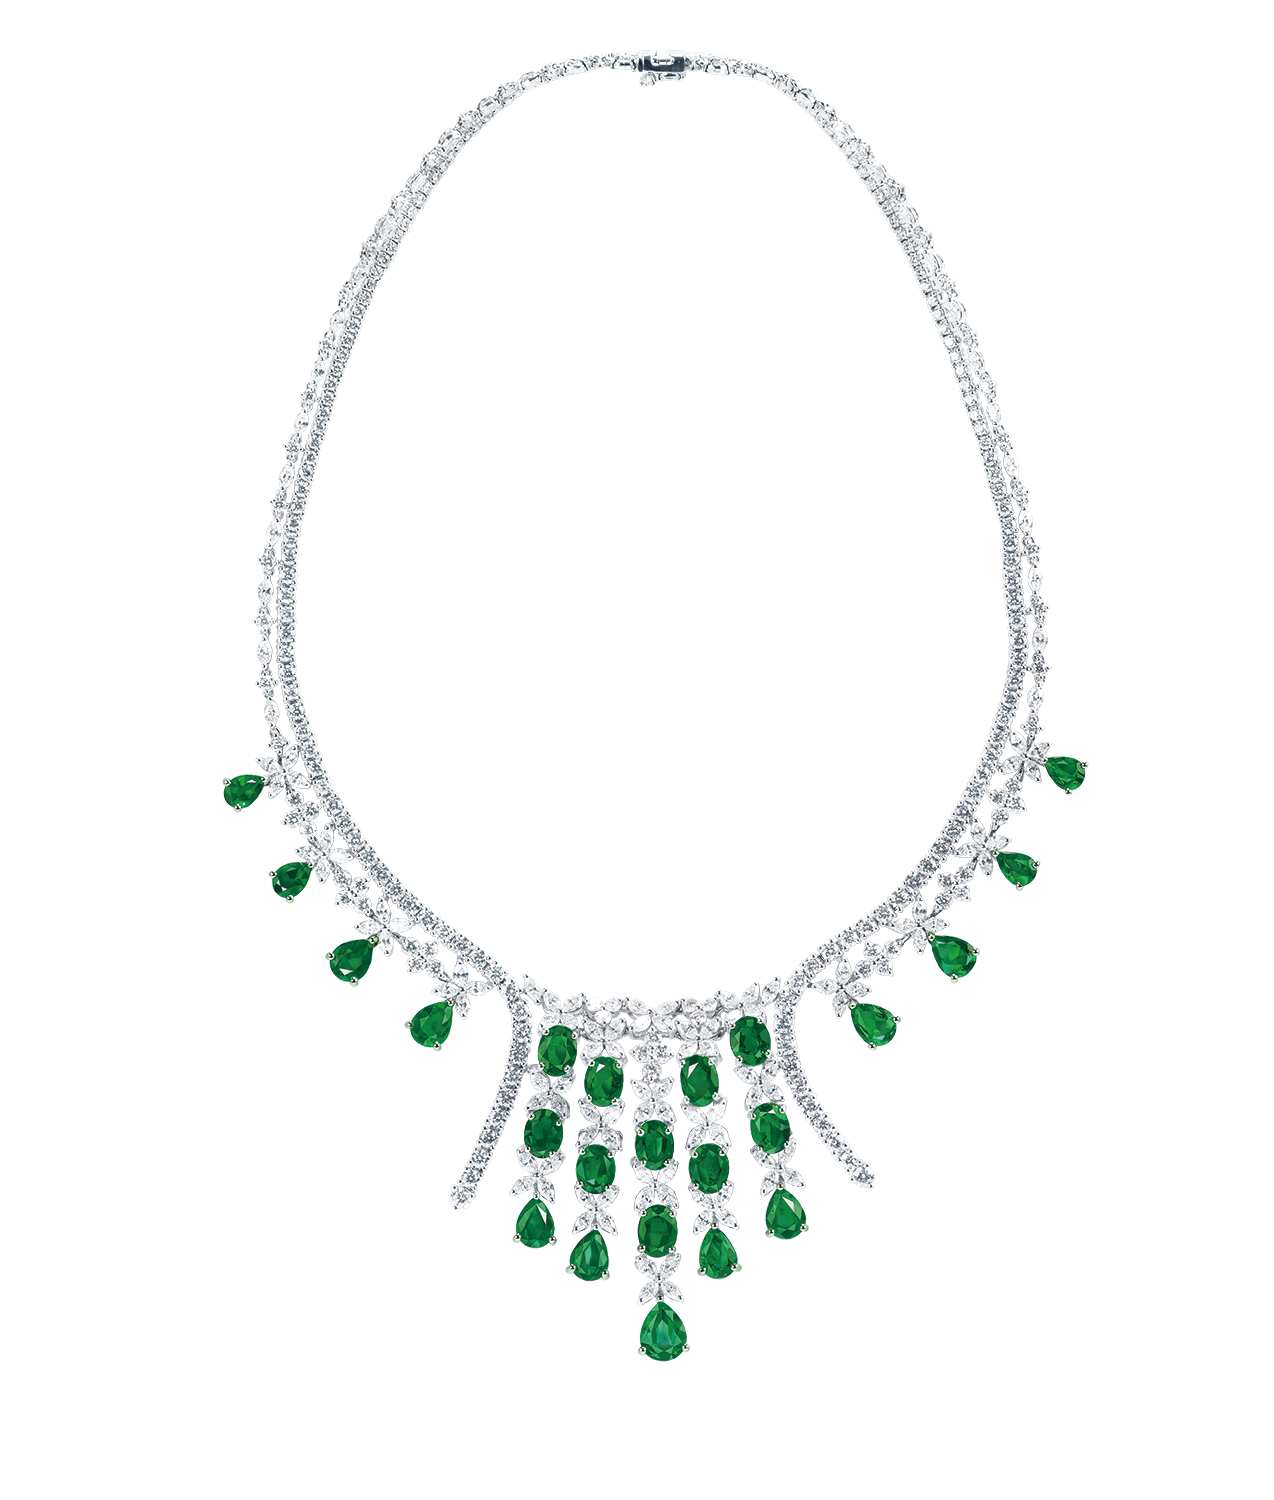 22.65克拉 祖母綠鑽石套鍊